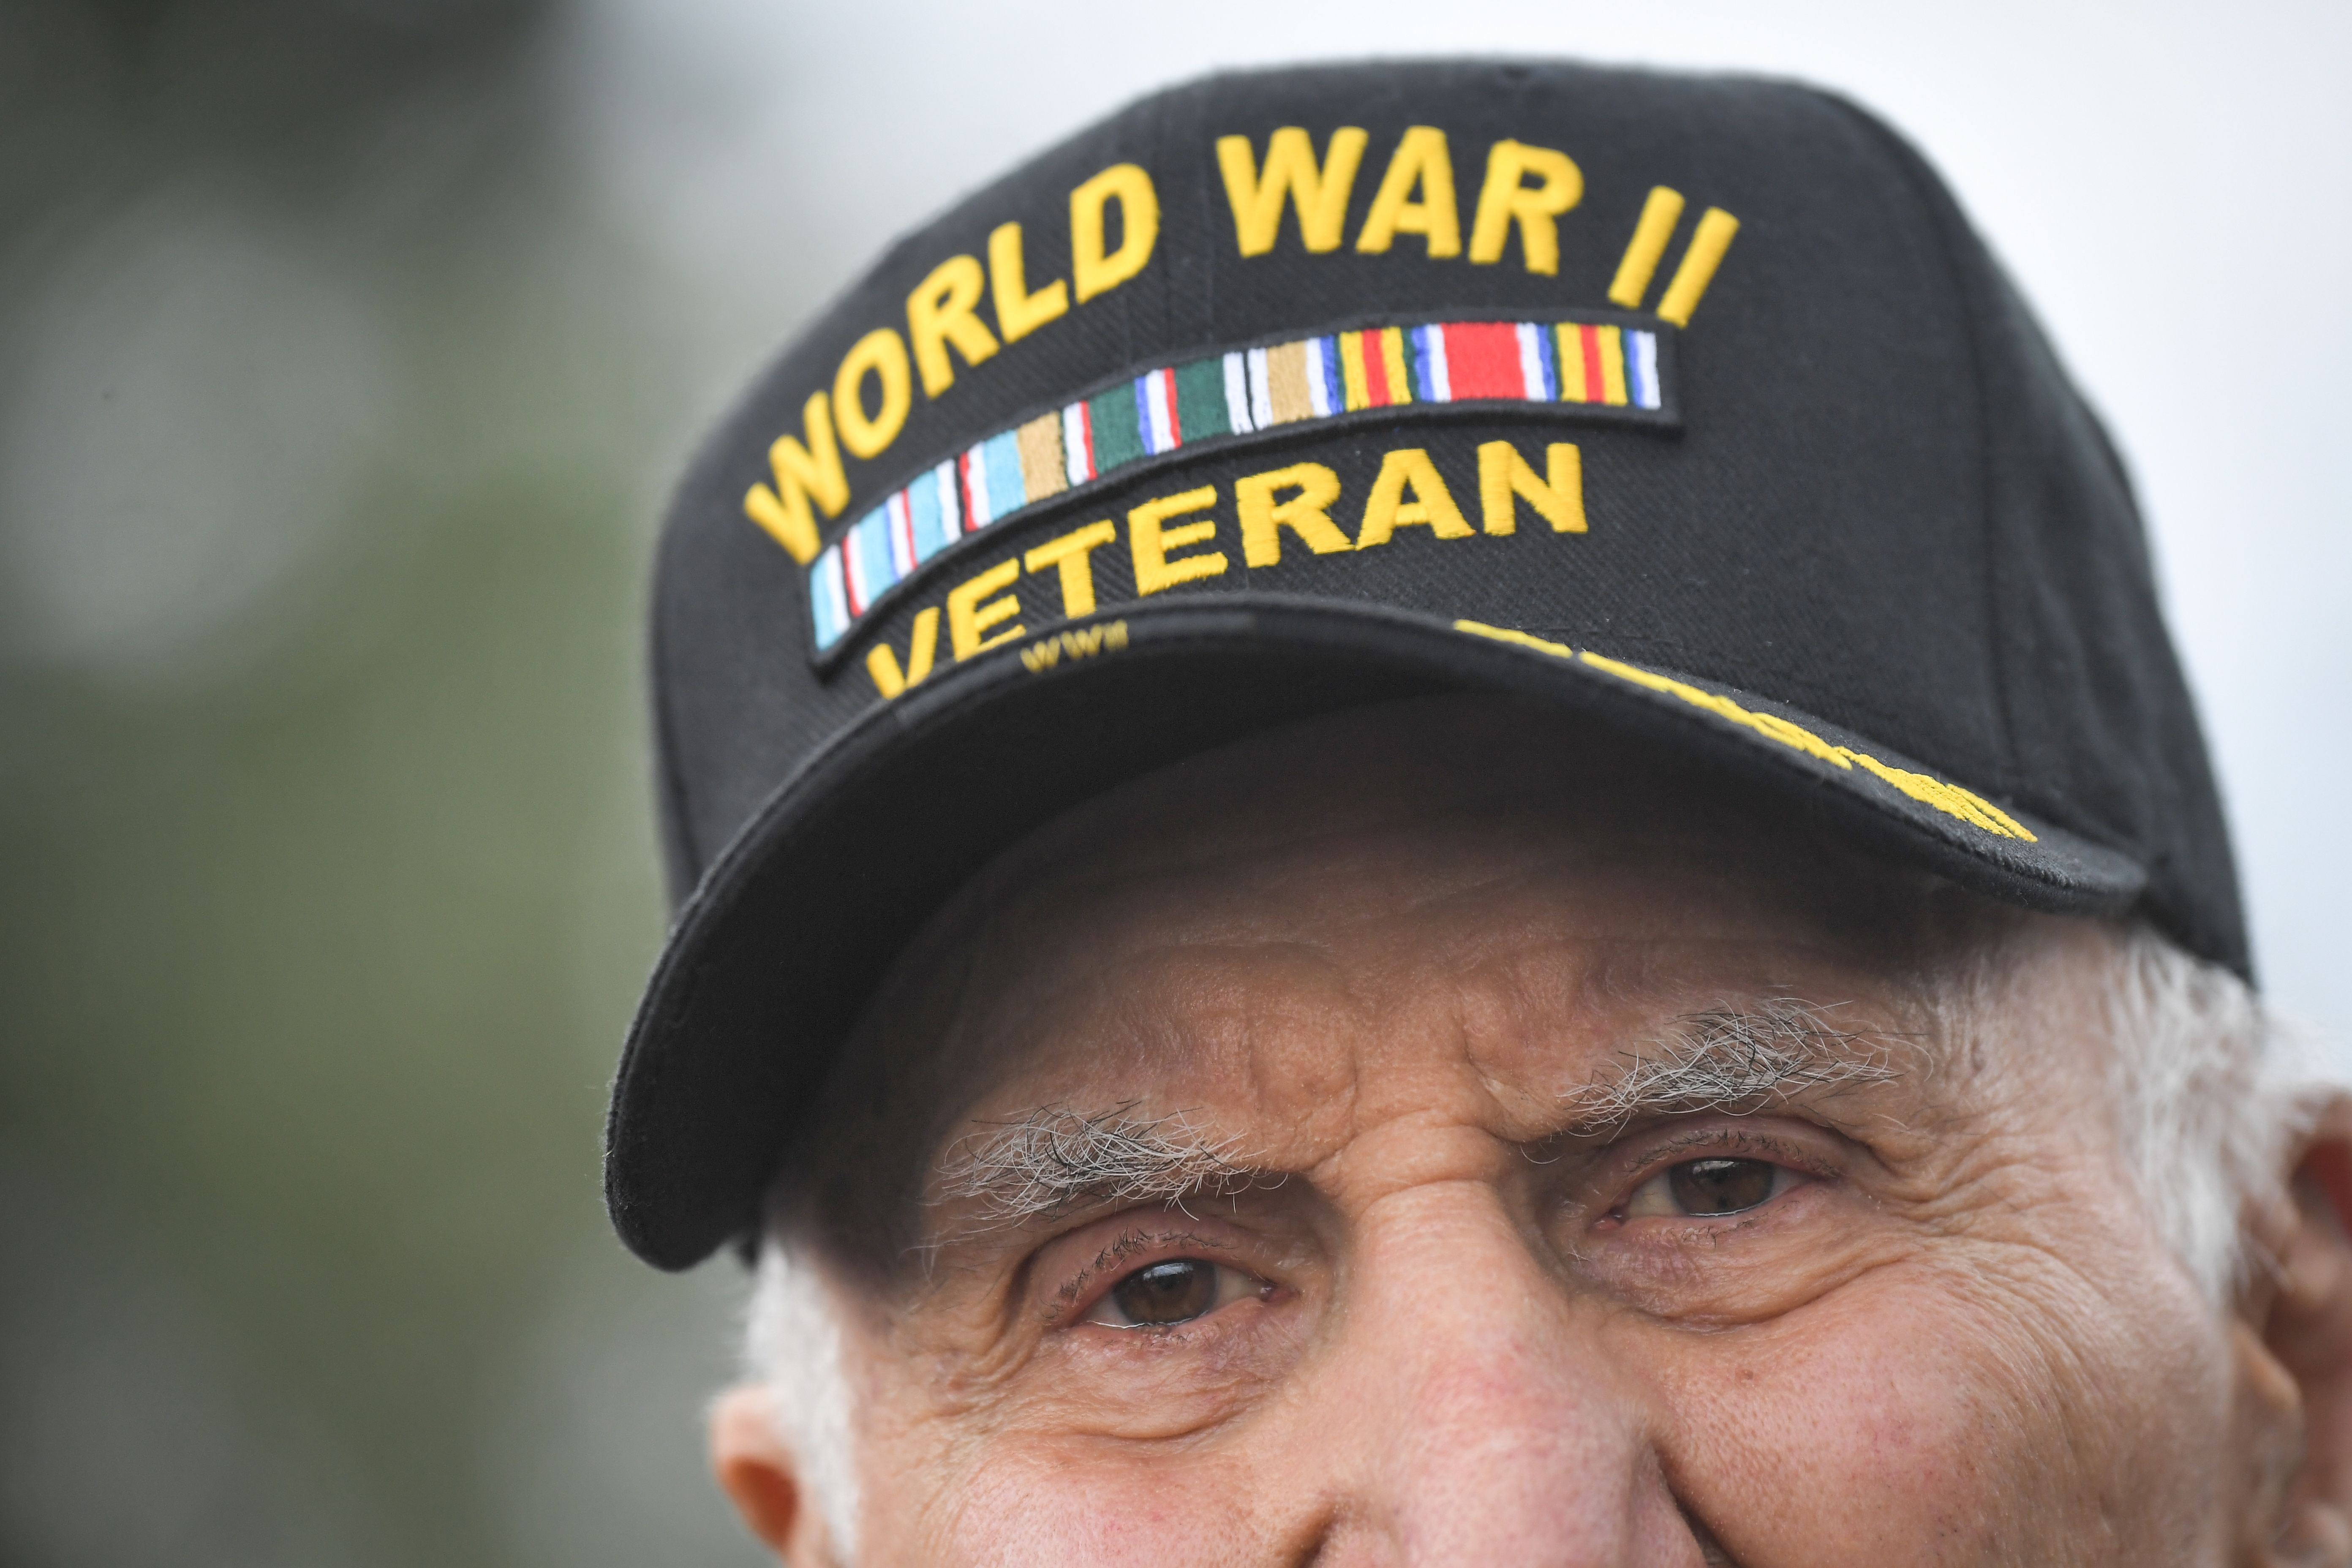 """US World War II veteran James Anthony """"Jacques"""" Michienzi  attends a ceremony on Omaha Beach in Saint-Laurent-sur-Mer, western France on June 5, 2019, in homage to native American Indians who took part in the D-Day landings of World War II. (Photo by LOIC VENANCE / AFP)"""